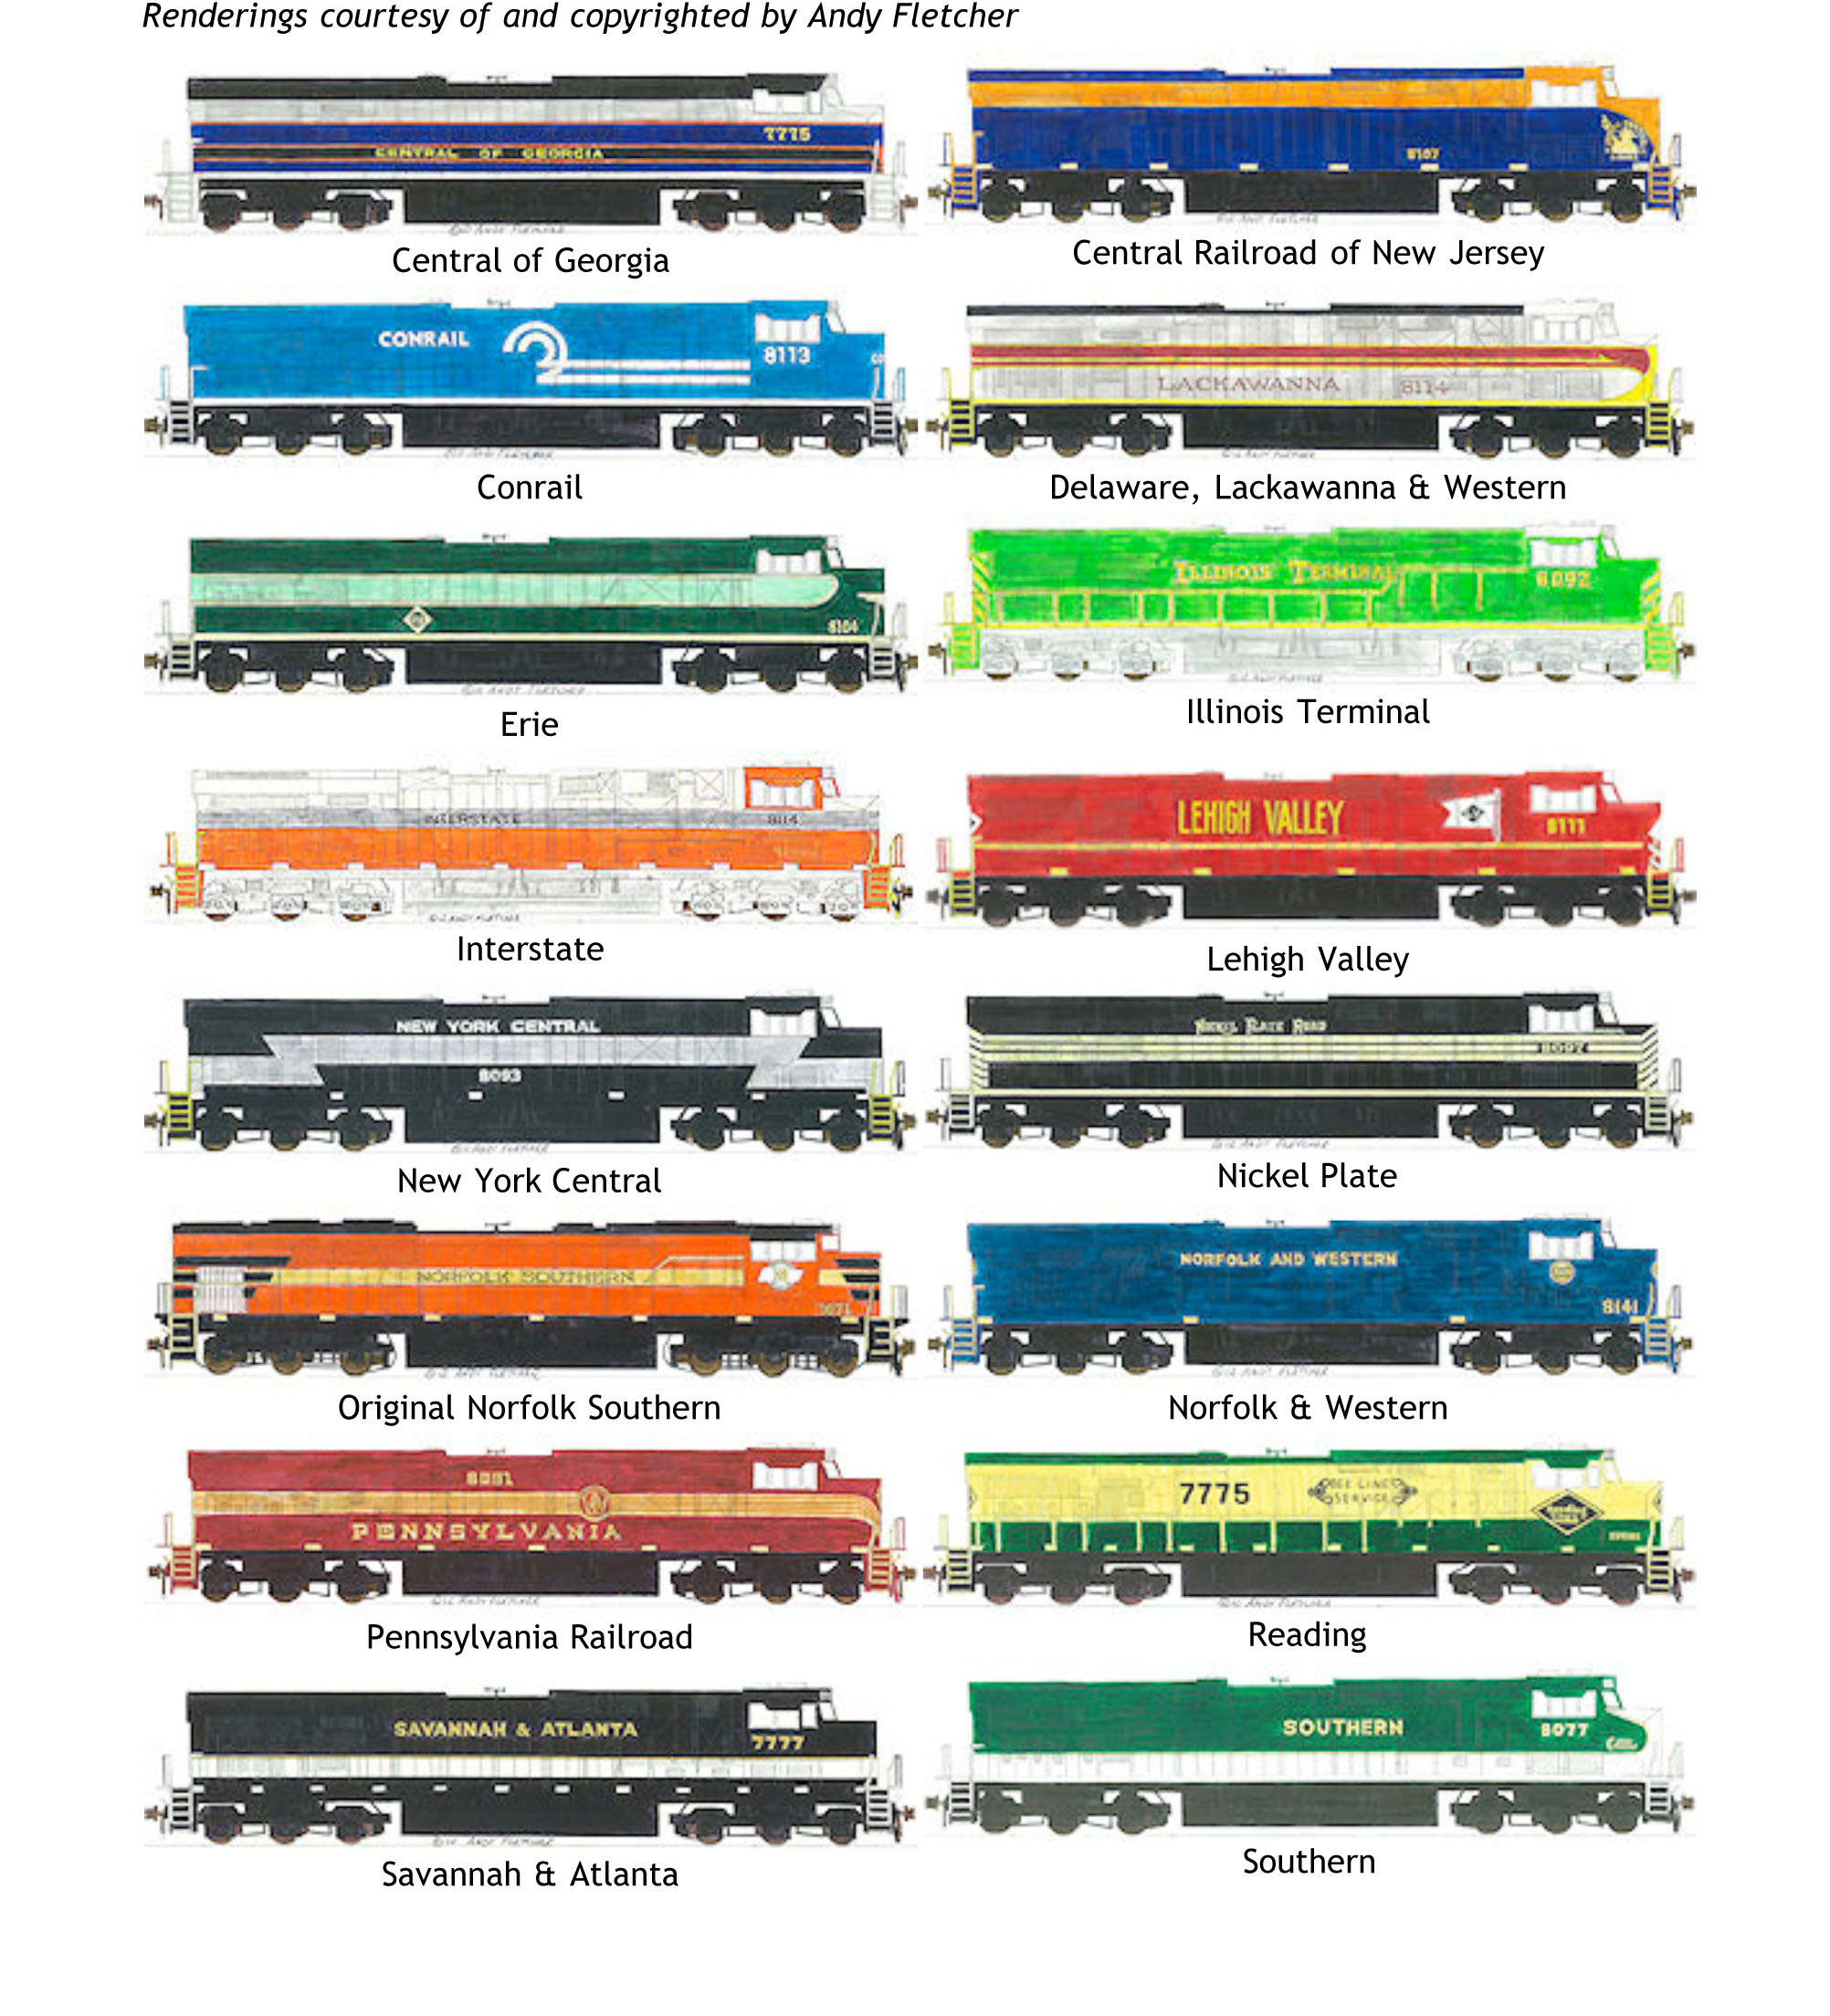 Paint schemes highlight NS historical heritage - Railway Age